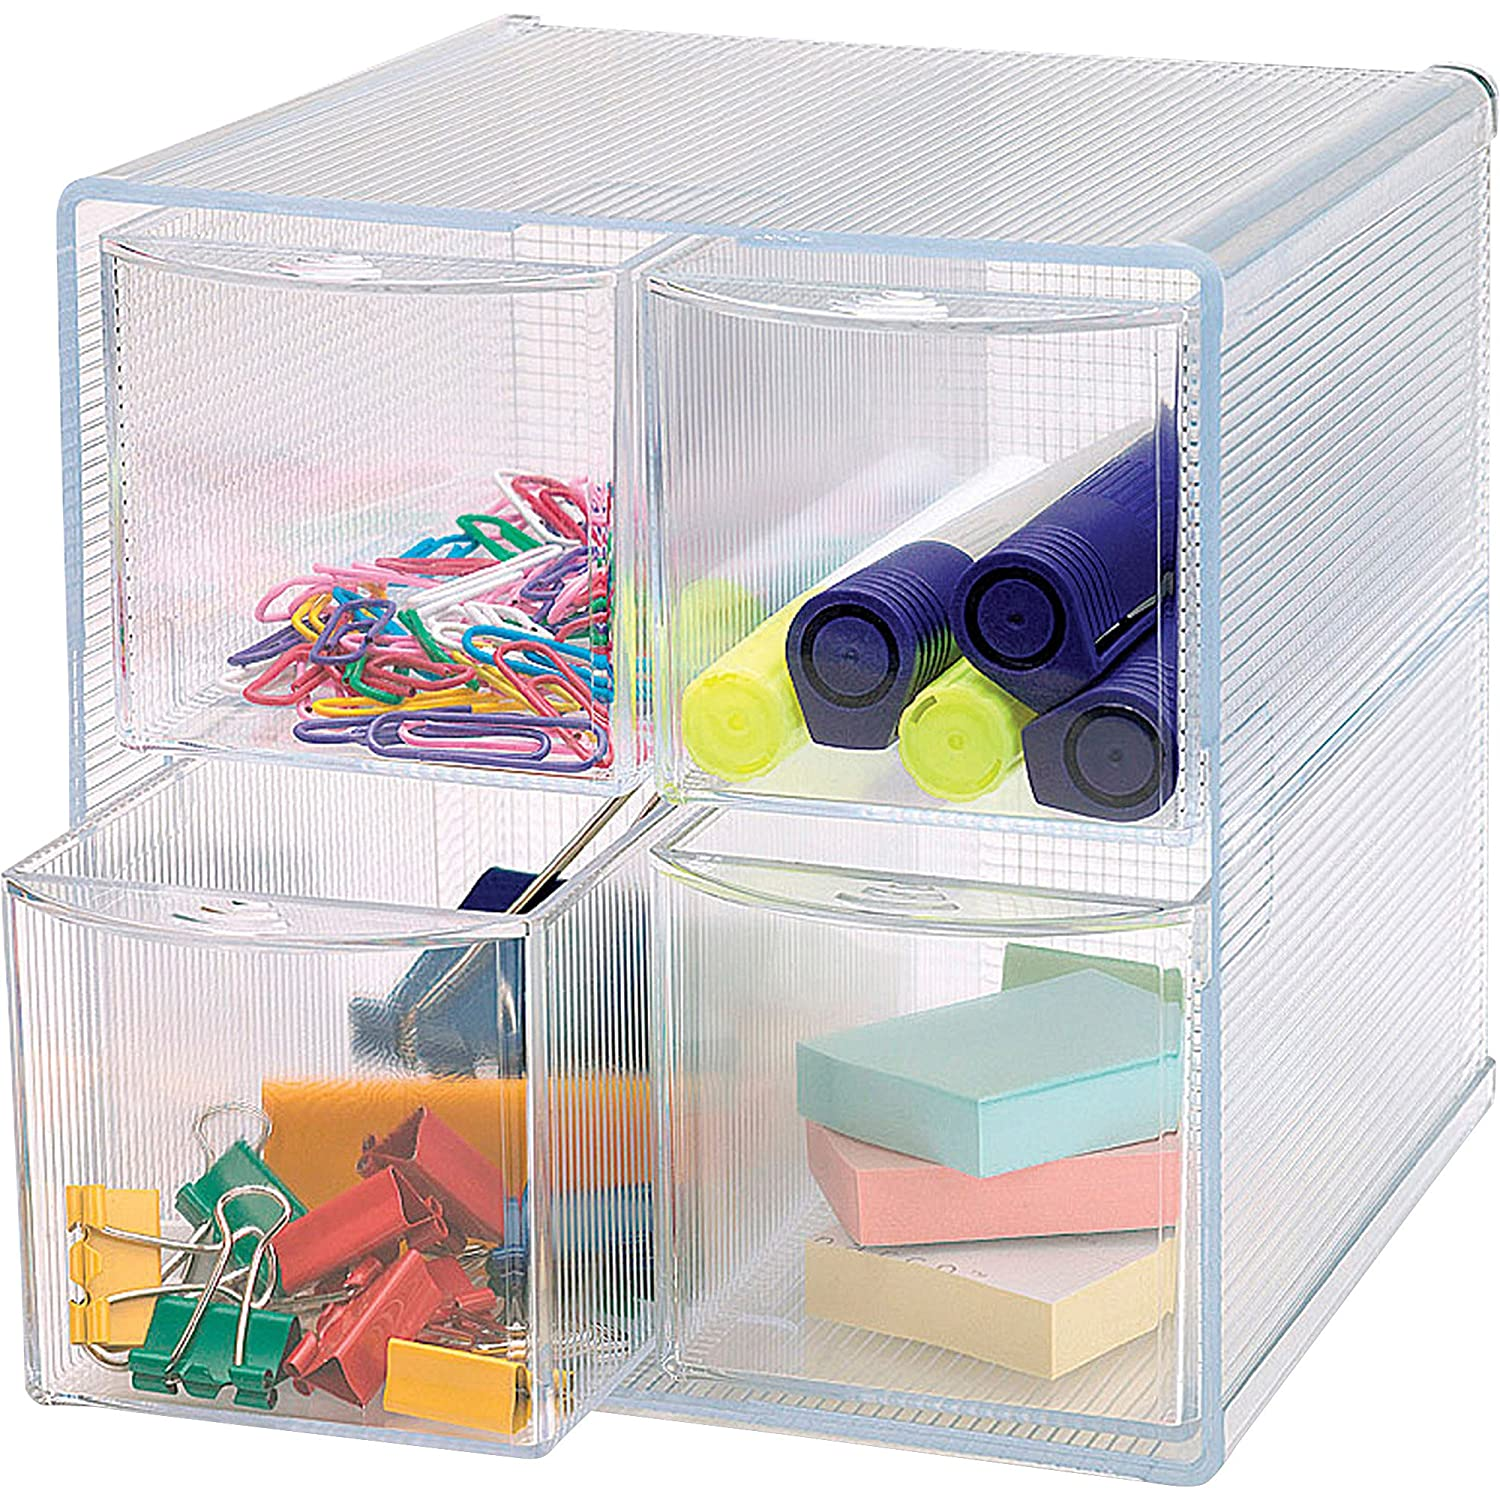 Sparco Storage Organizer, 4 Compartment, 6 x 7 1/4 x 6 Inches, Clear(SPR82977) S.P. Richards Company